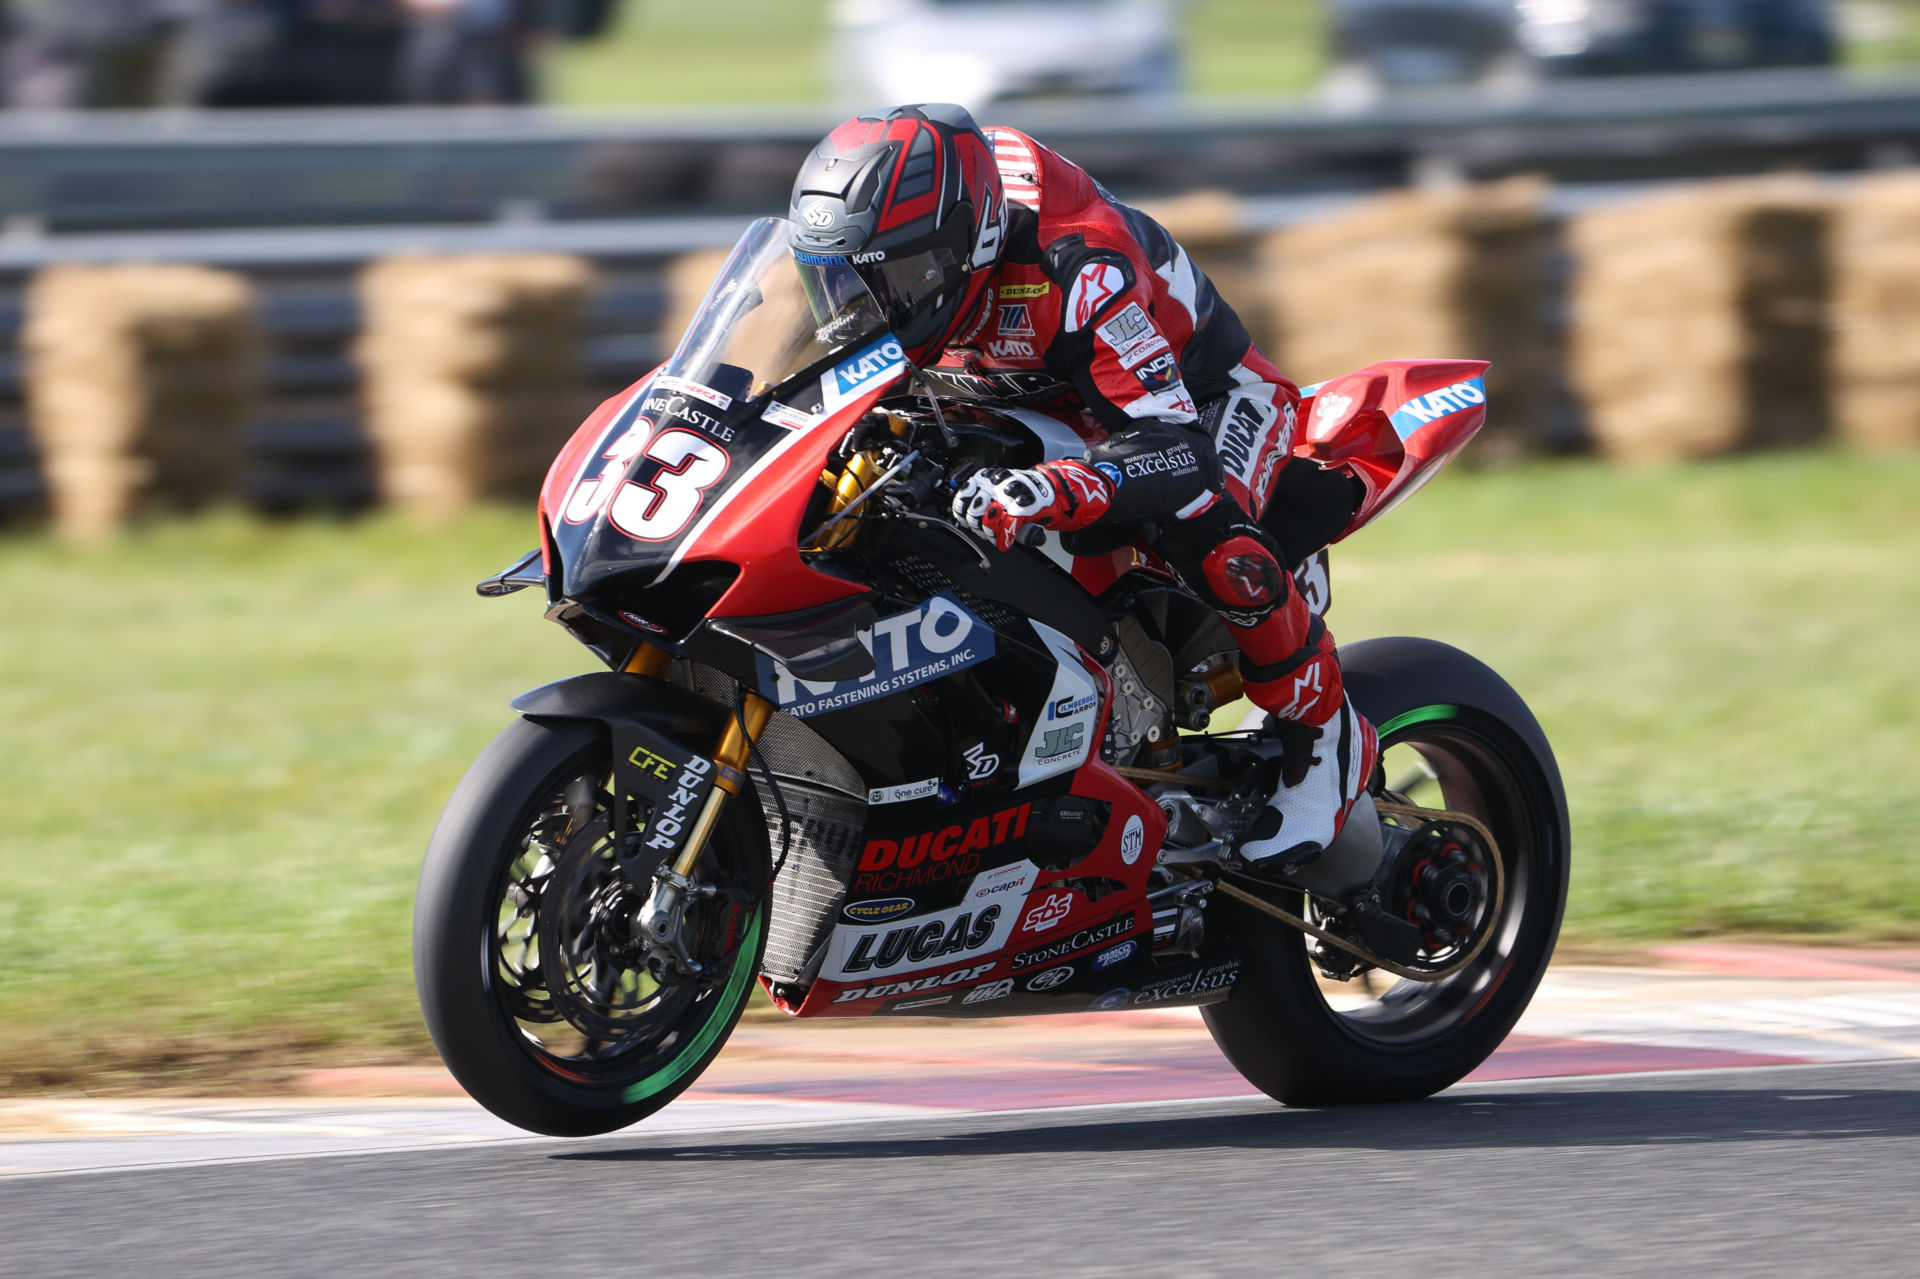 Kyle Wyman (33) in action at New Jersey Motorsports Park. Photo courtesy Ducati North America.